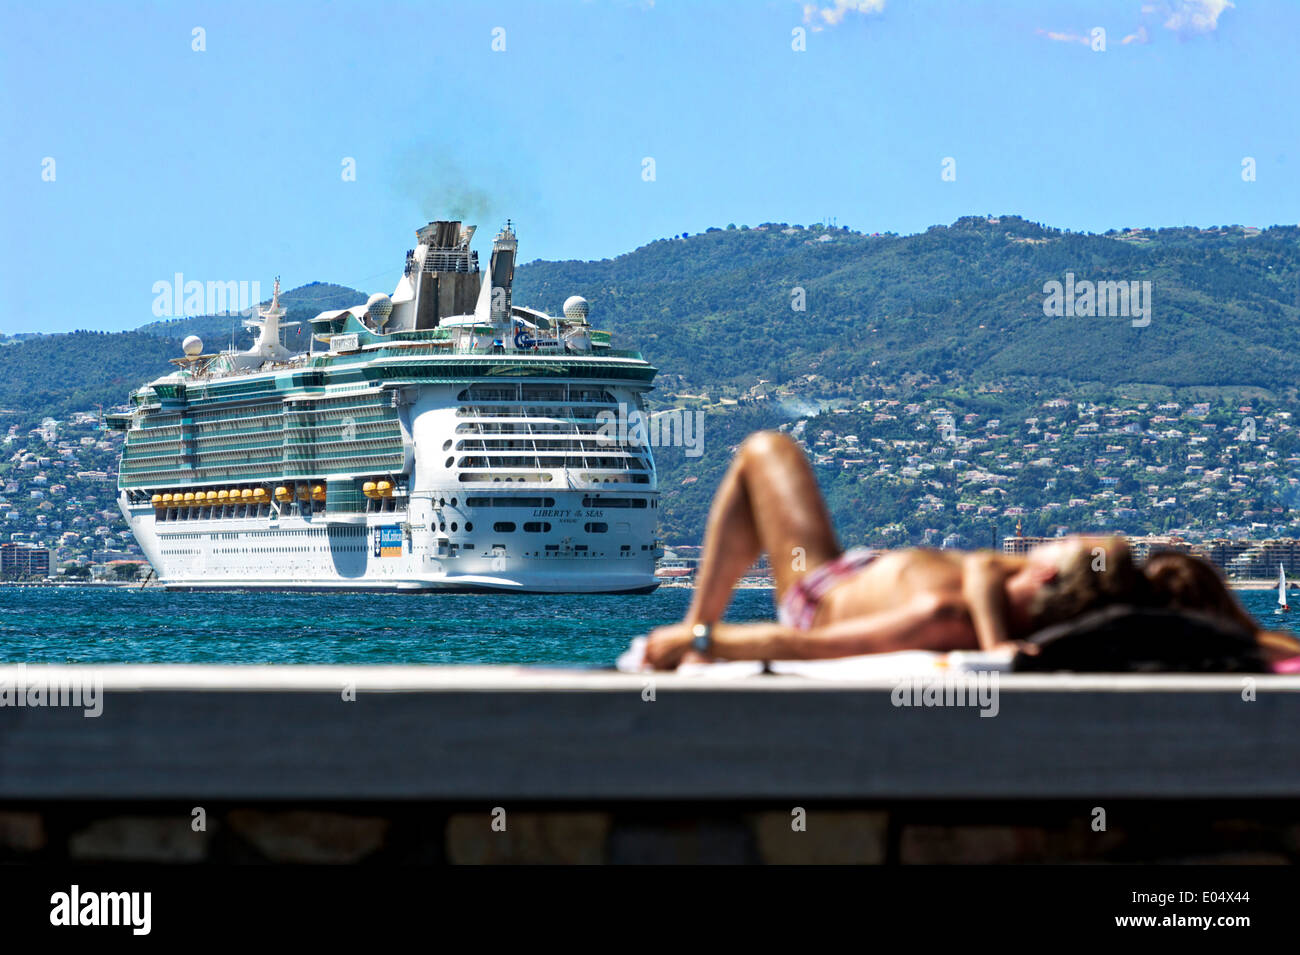 Europe, France, Alpes-Maritimes, Cannes. Rest front of a liner. - Stock Image